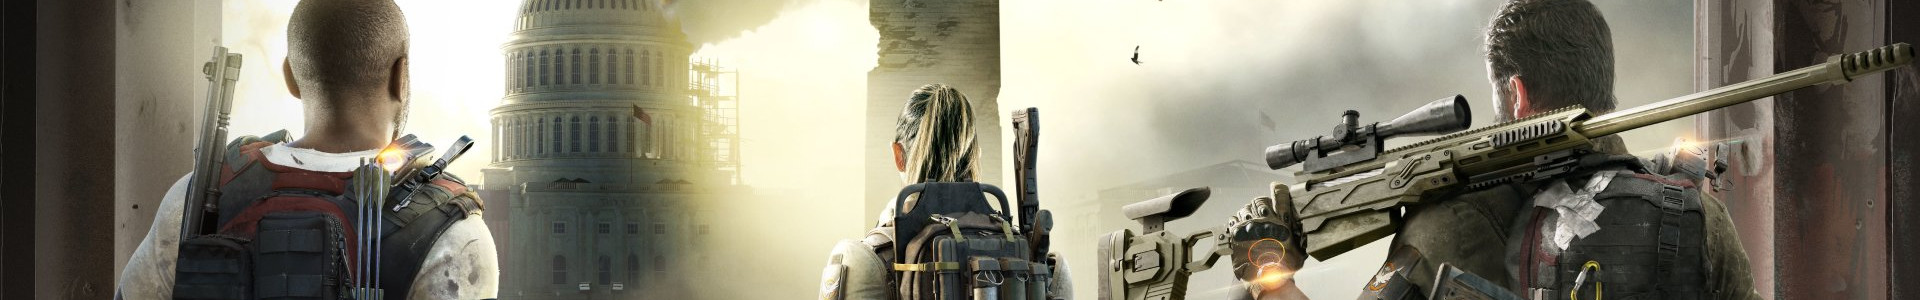 Banner media of Tom Clancy's The Division 2 video game.